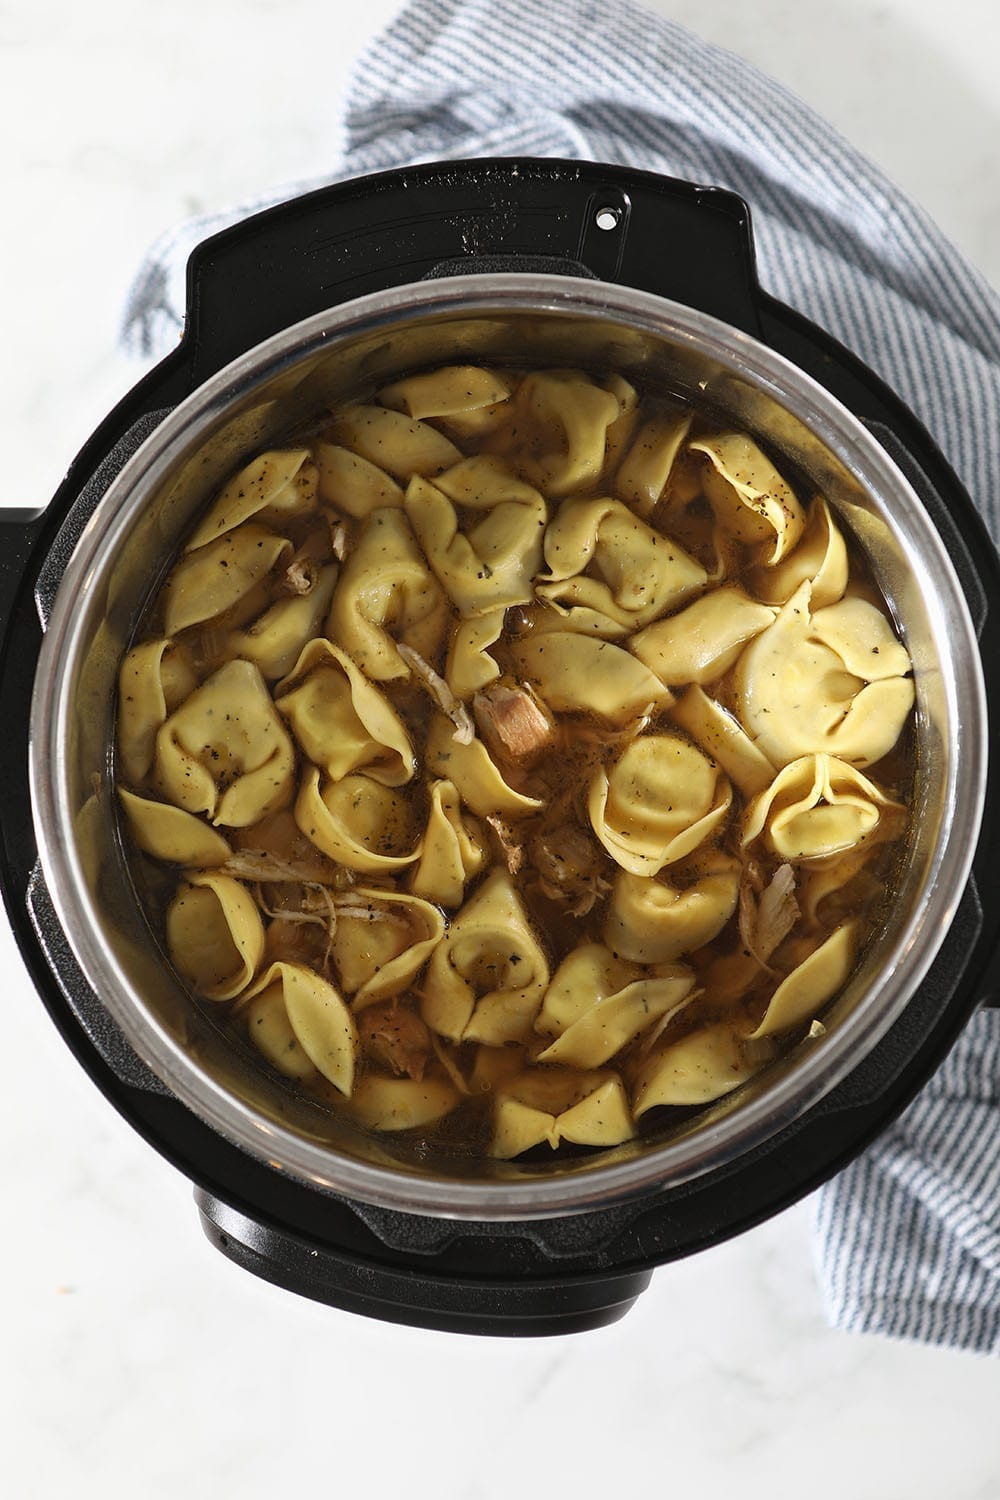 Tortellini is added to the slow cooker, from above